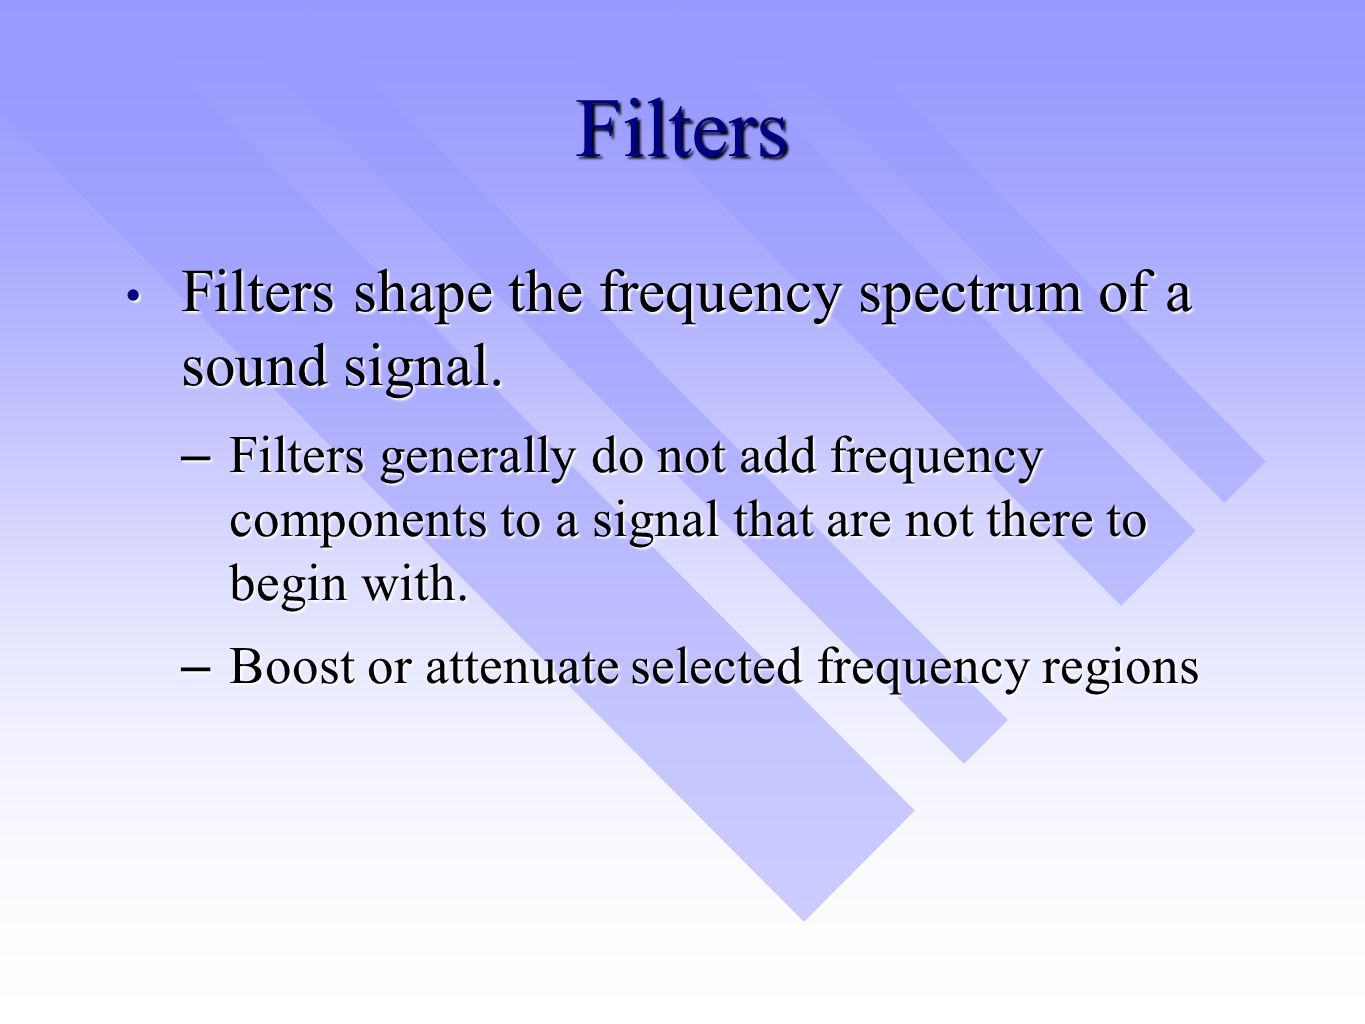 Filters Filters shape the frequency spectrum of a sound signal. Filters shape the frequency spectrum of a sound signal. –Filters generally do not add